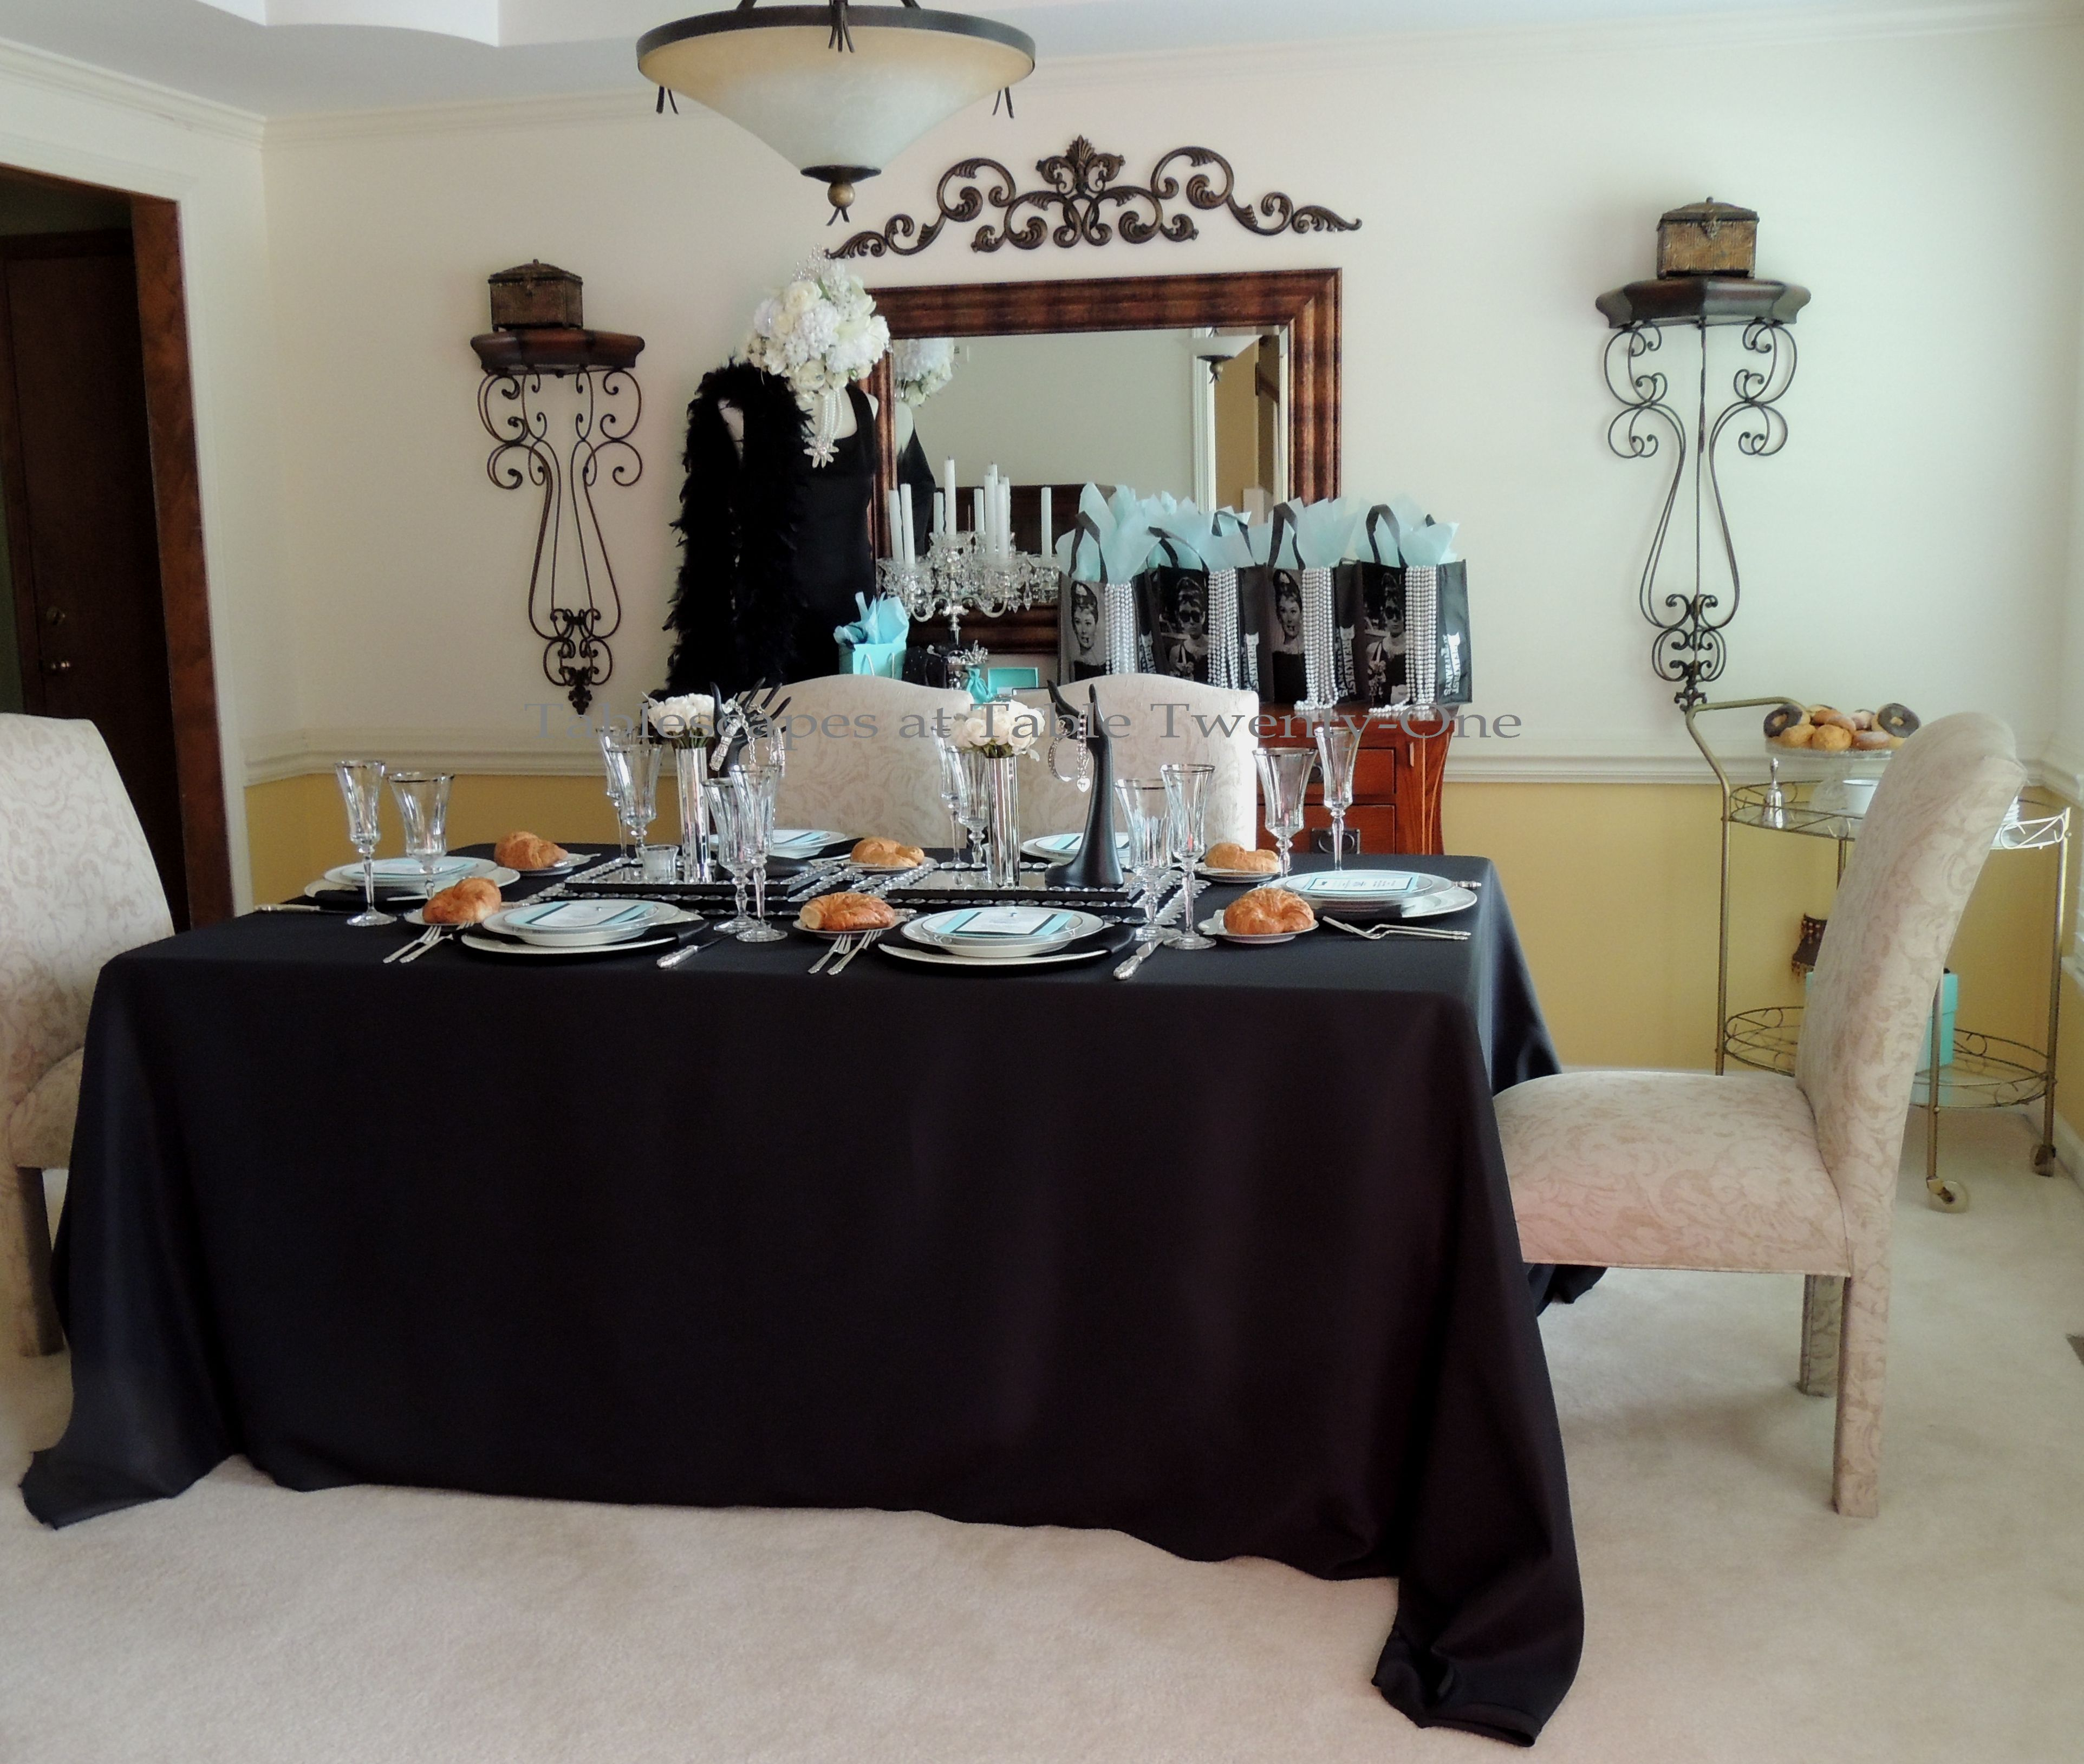 Dining Room Tablescapes: Tablescapes At Table Twenty-One